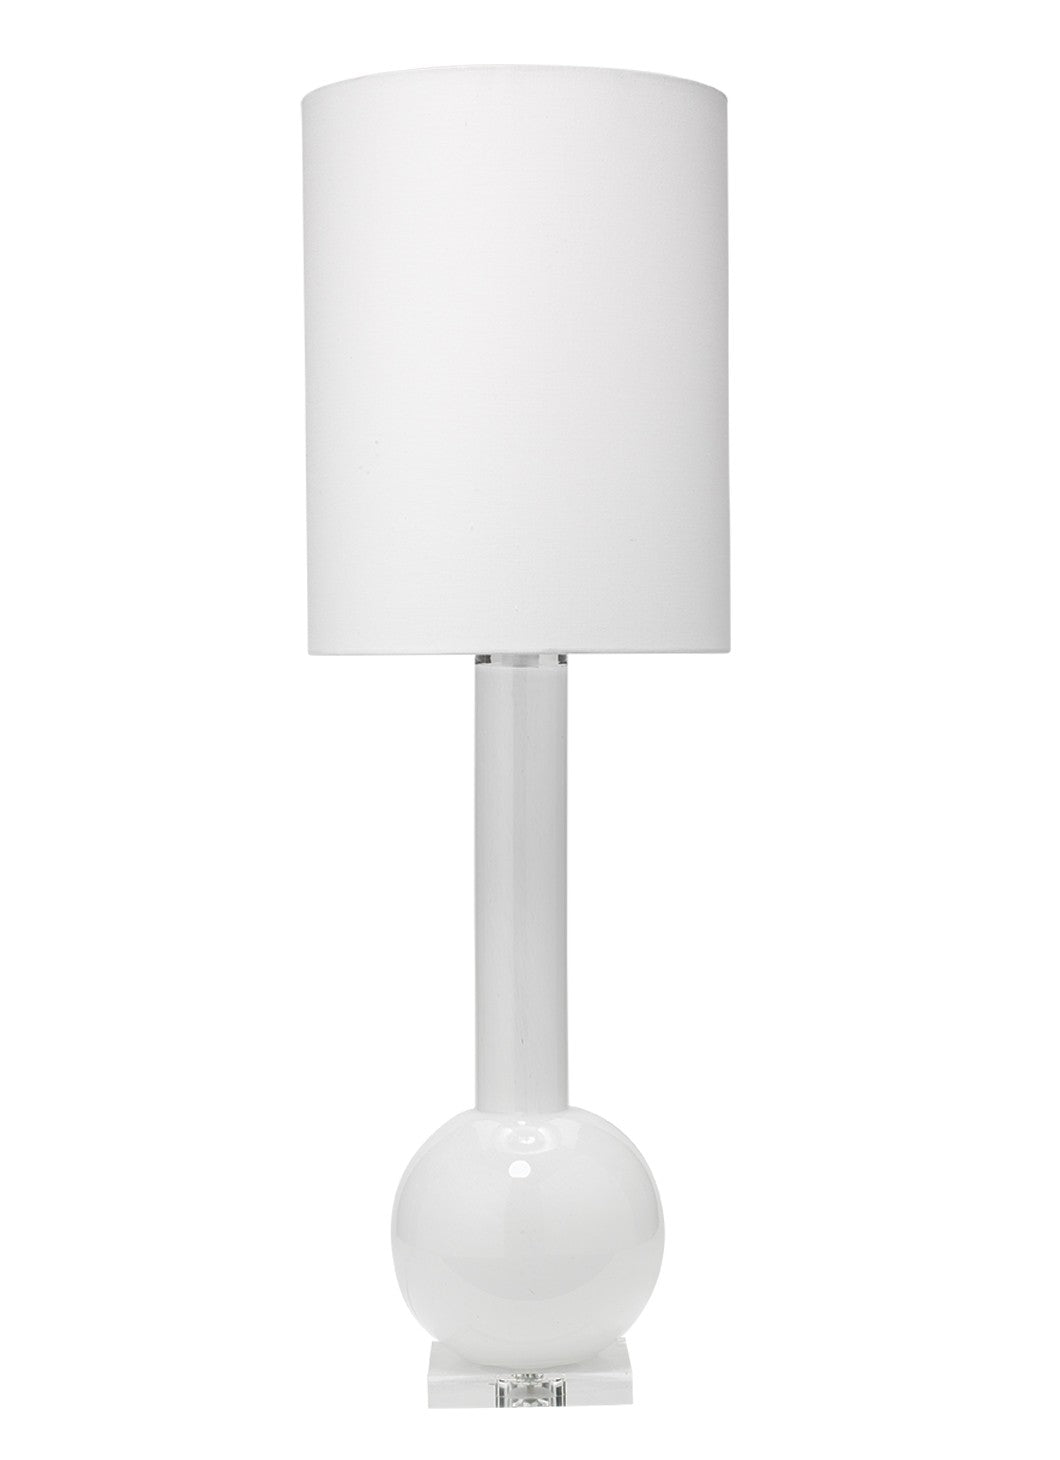 jamie young studio table lamp white